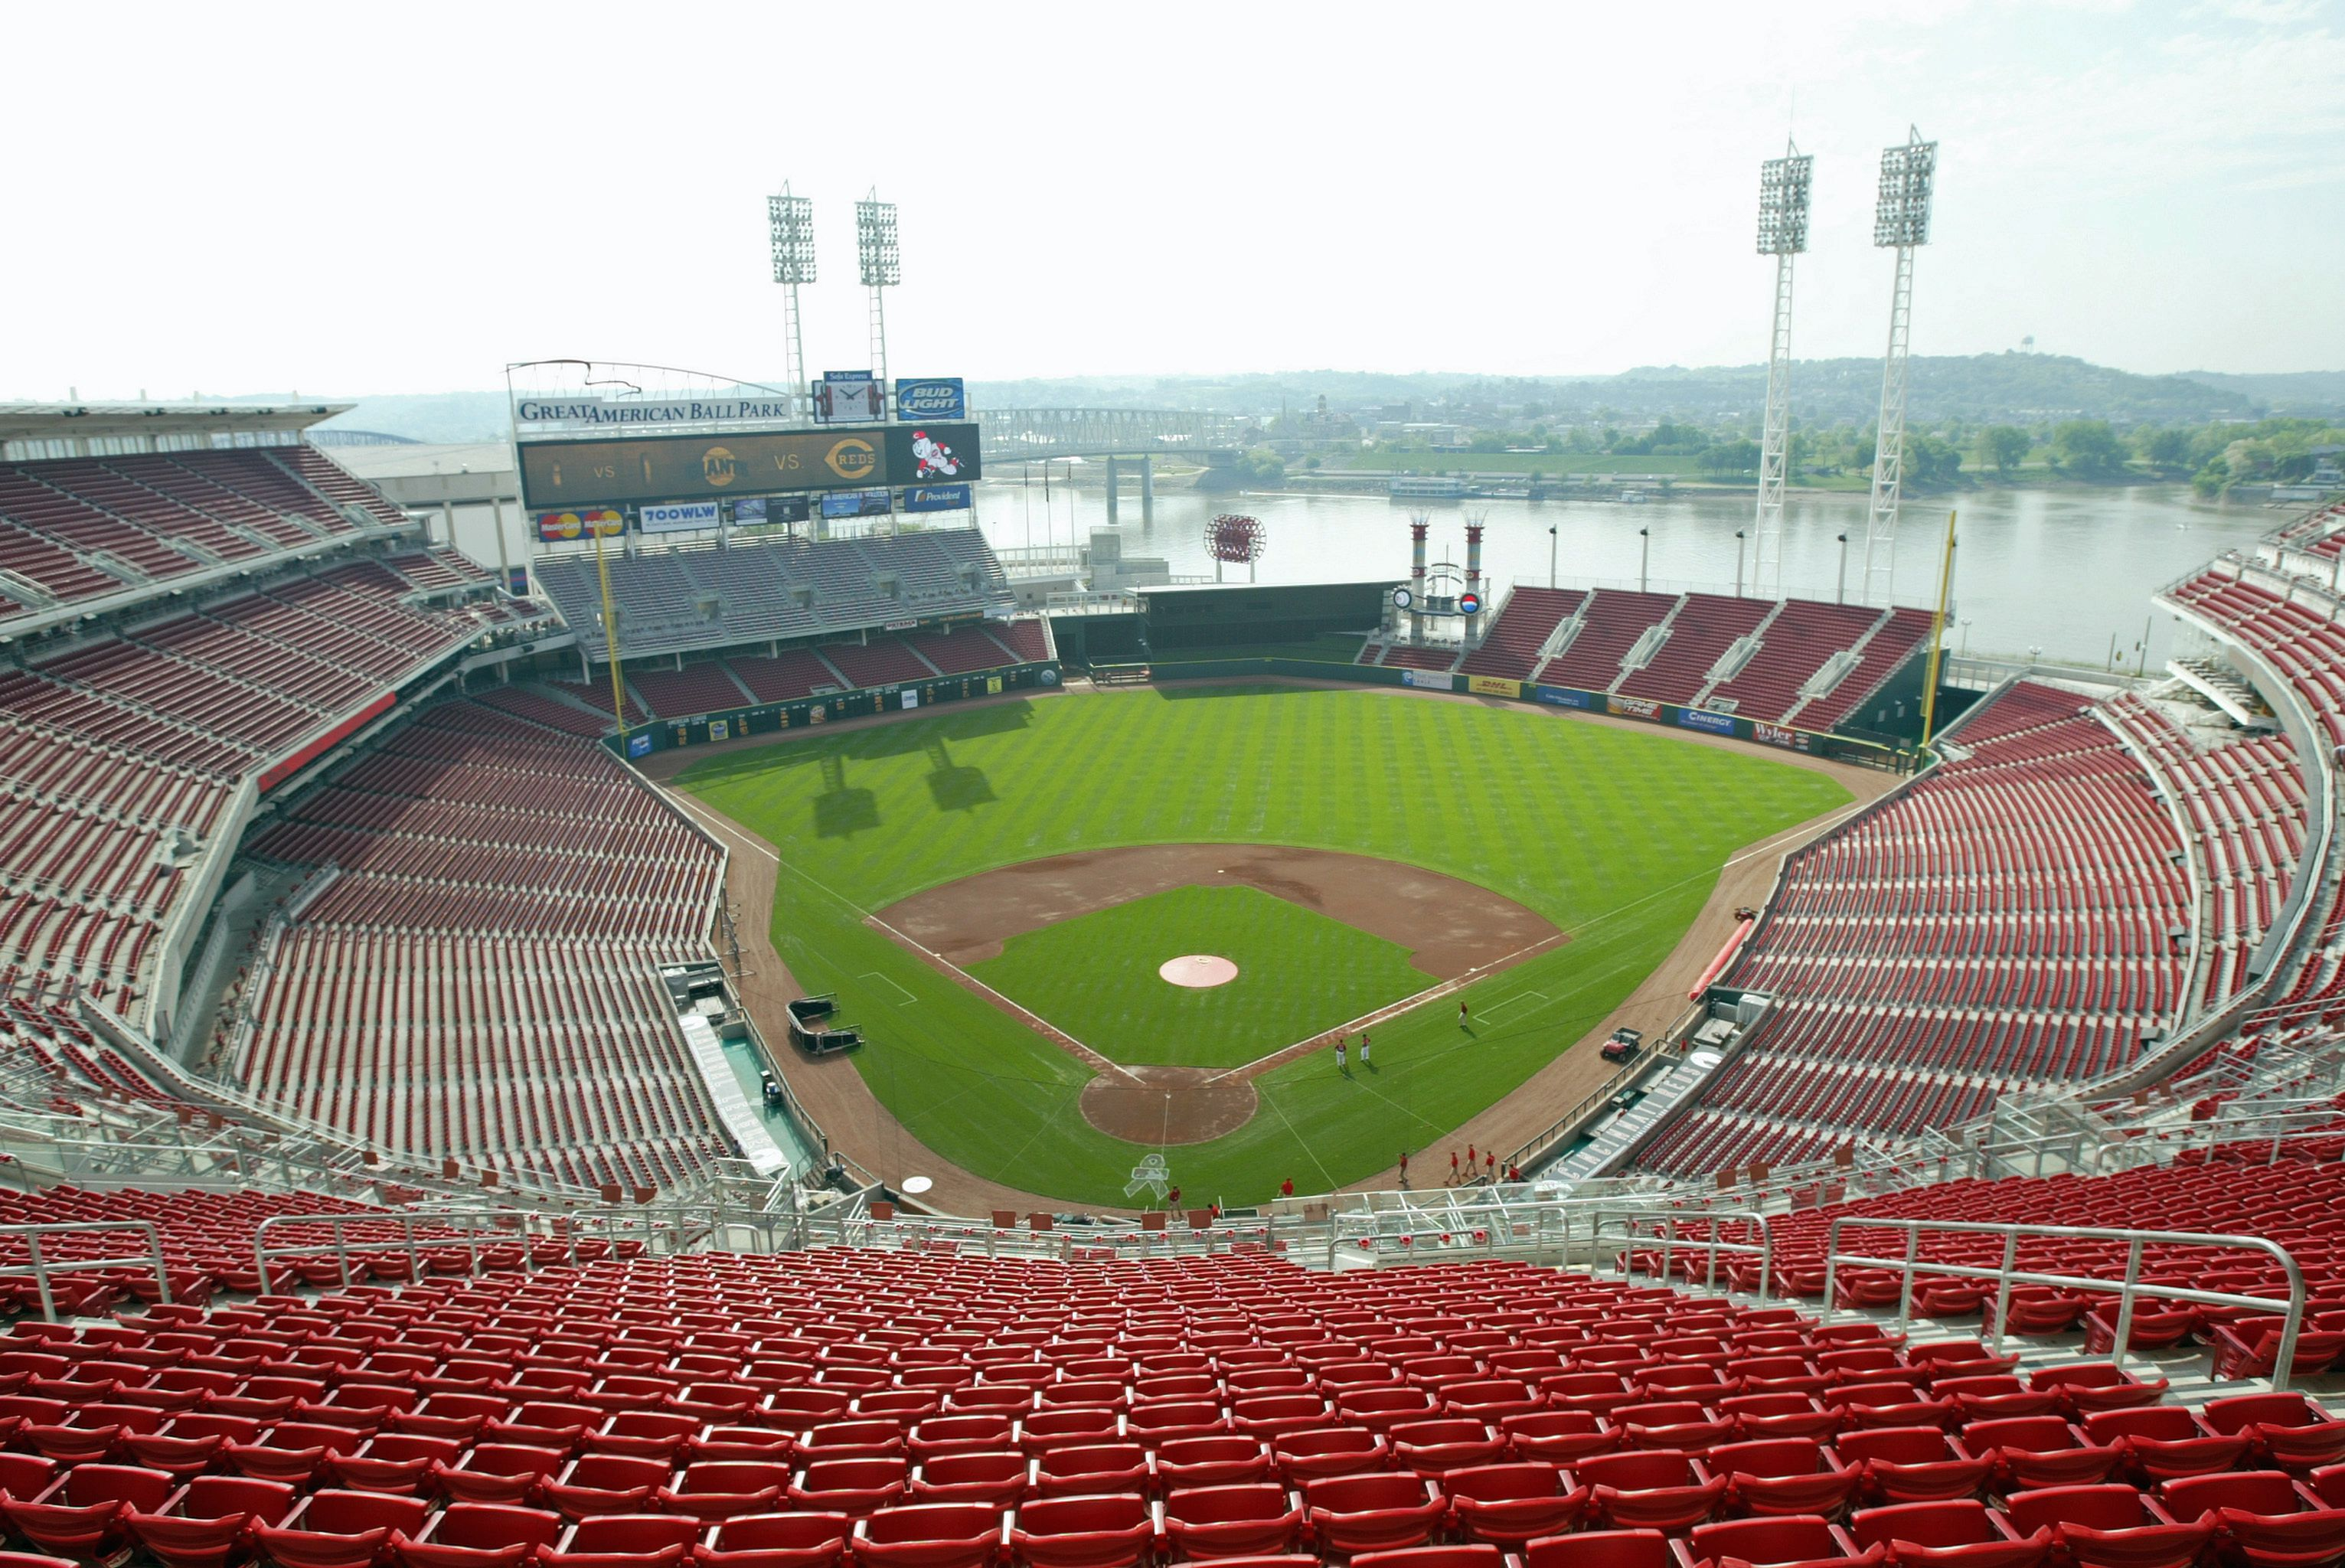 Things to Do for Under $10 in Cincinnati